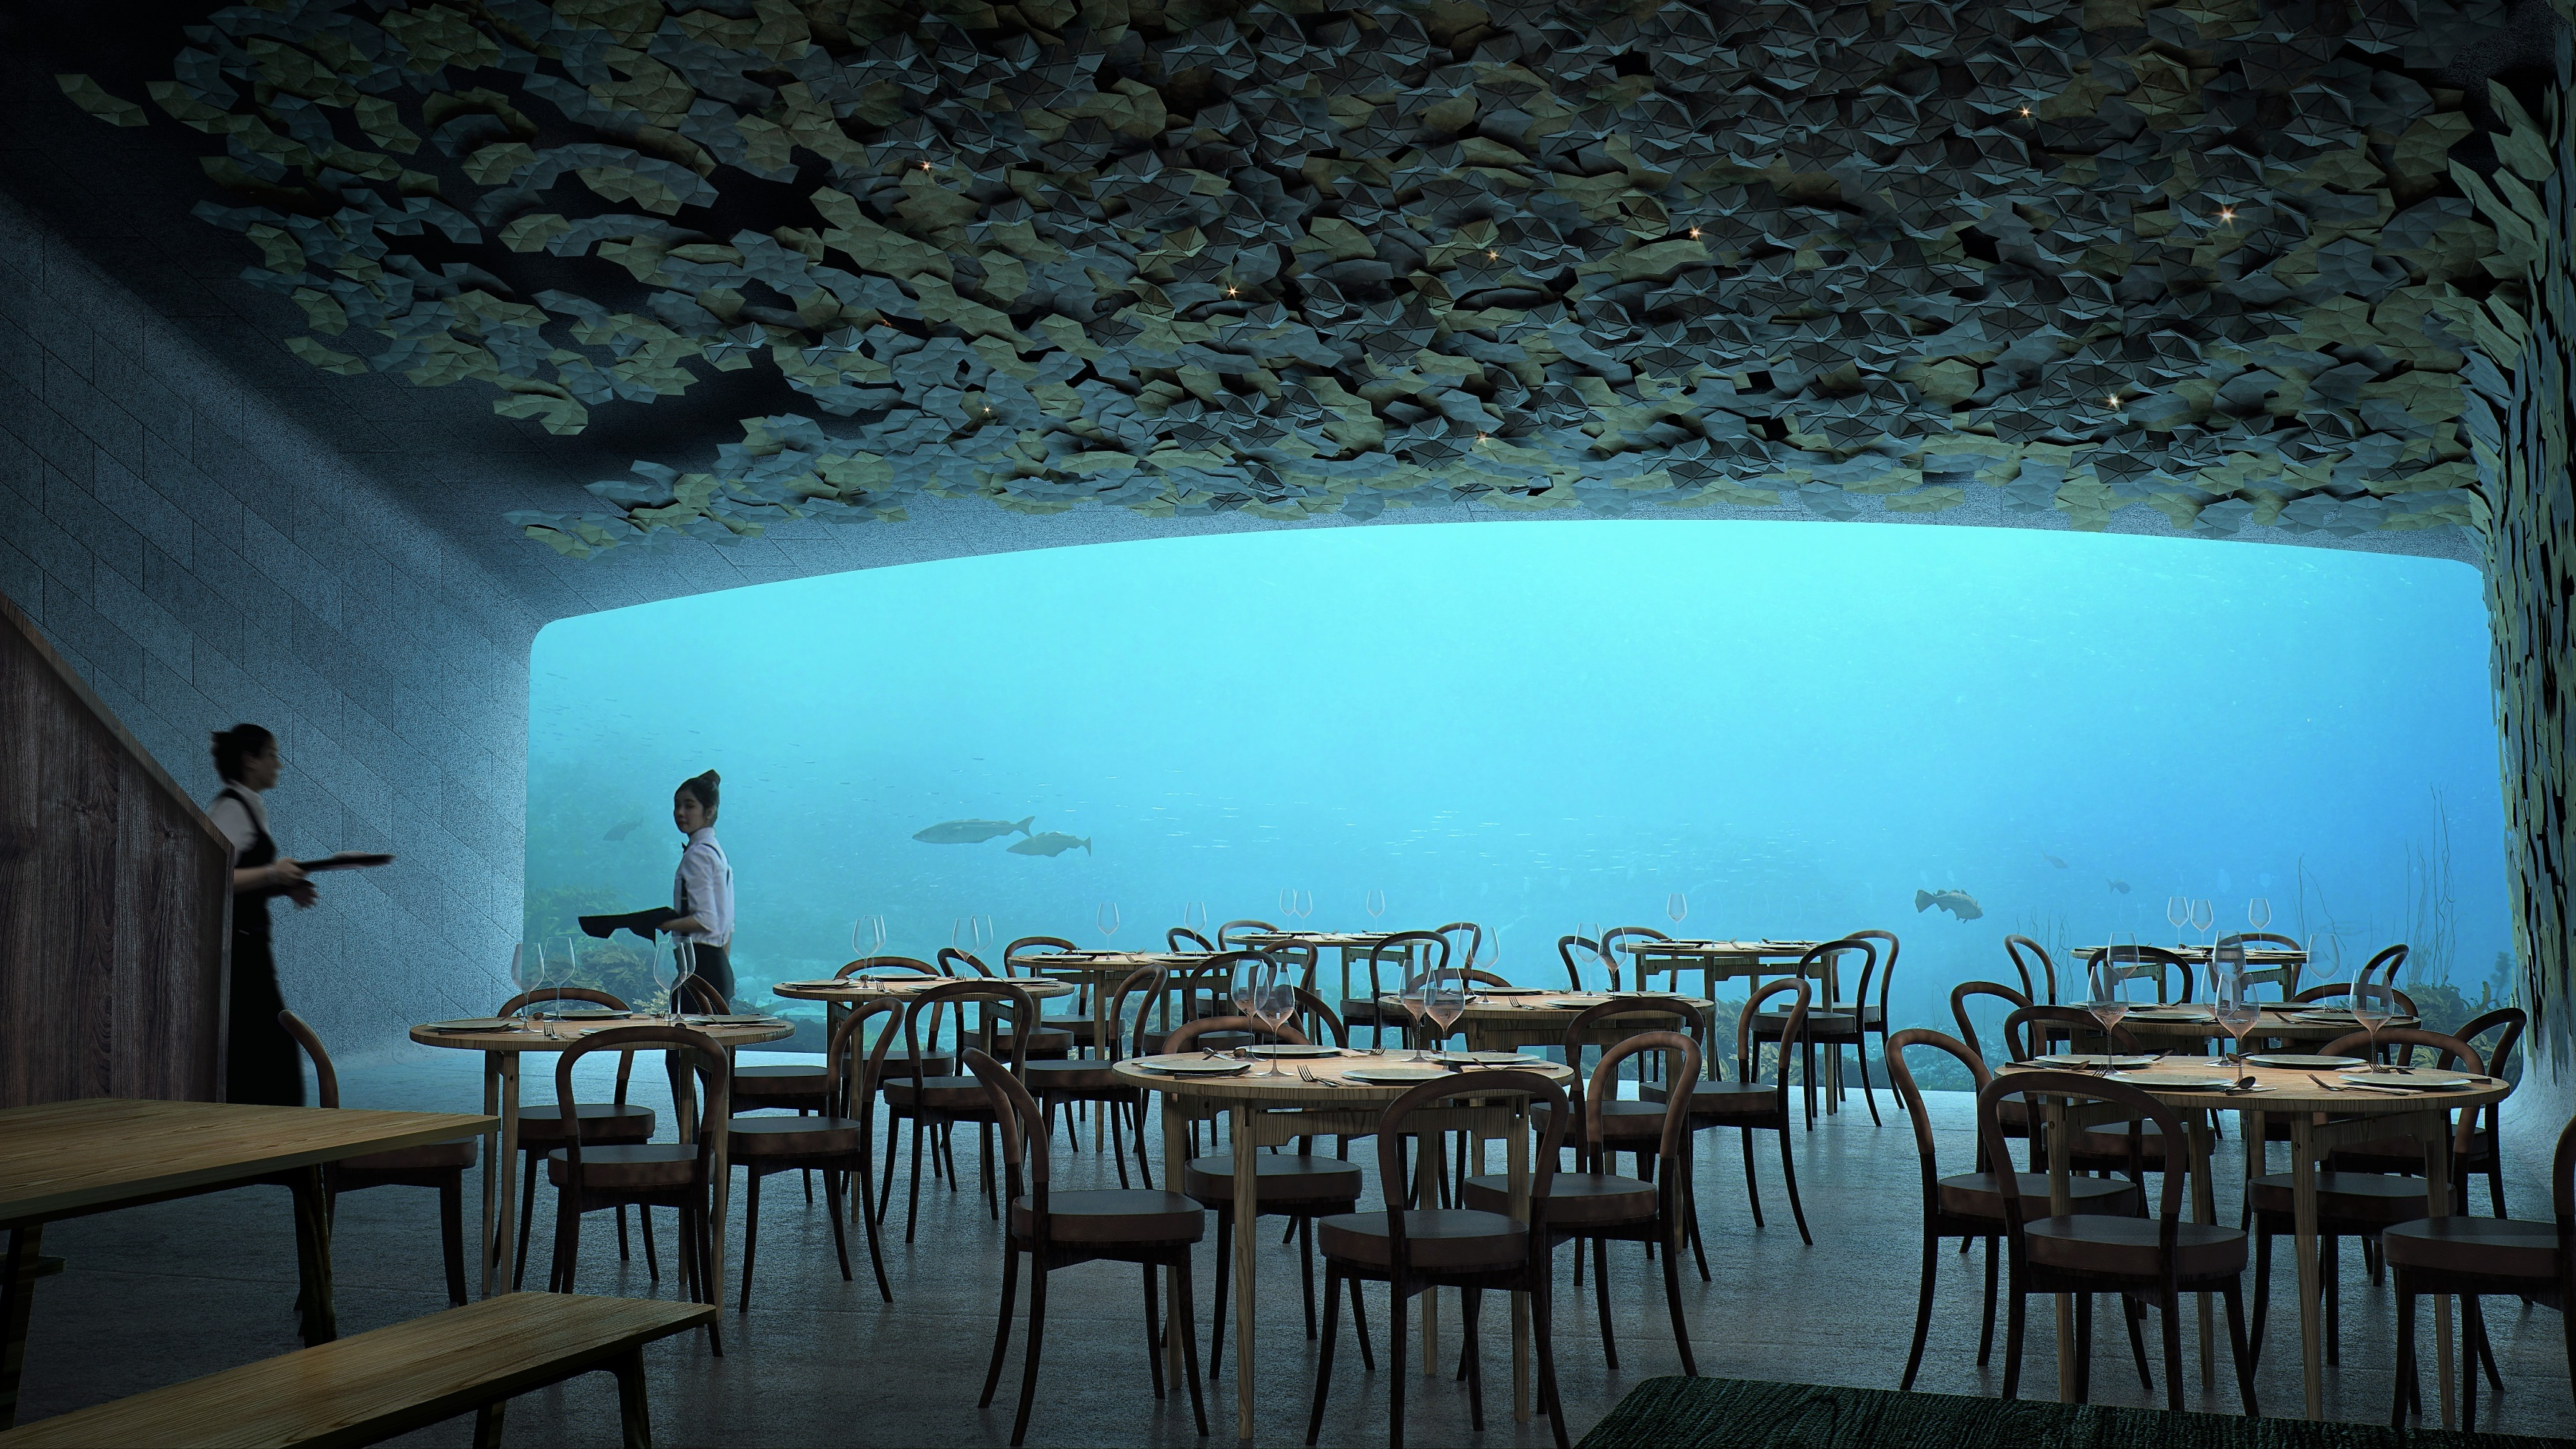 1_Inside-underwater-restaurant-Under-Lindesnes-Southern-Norway